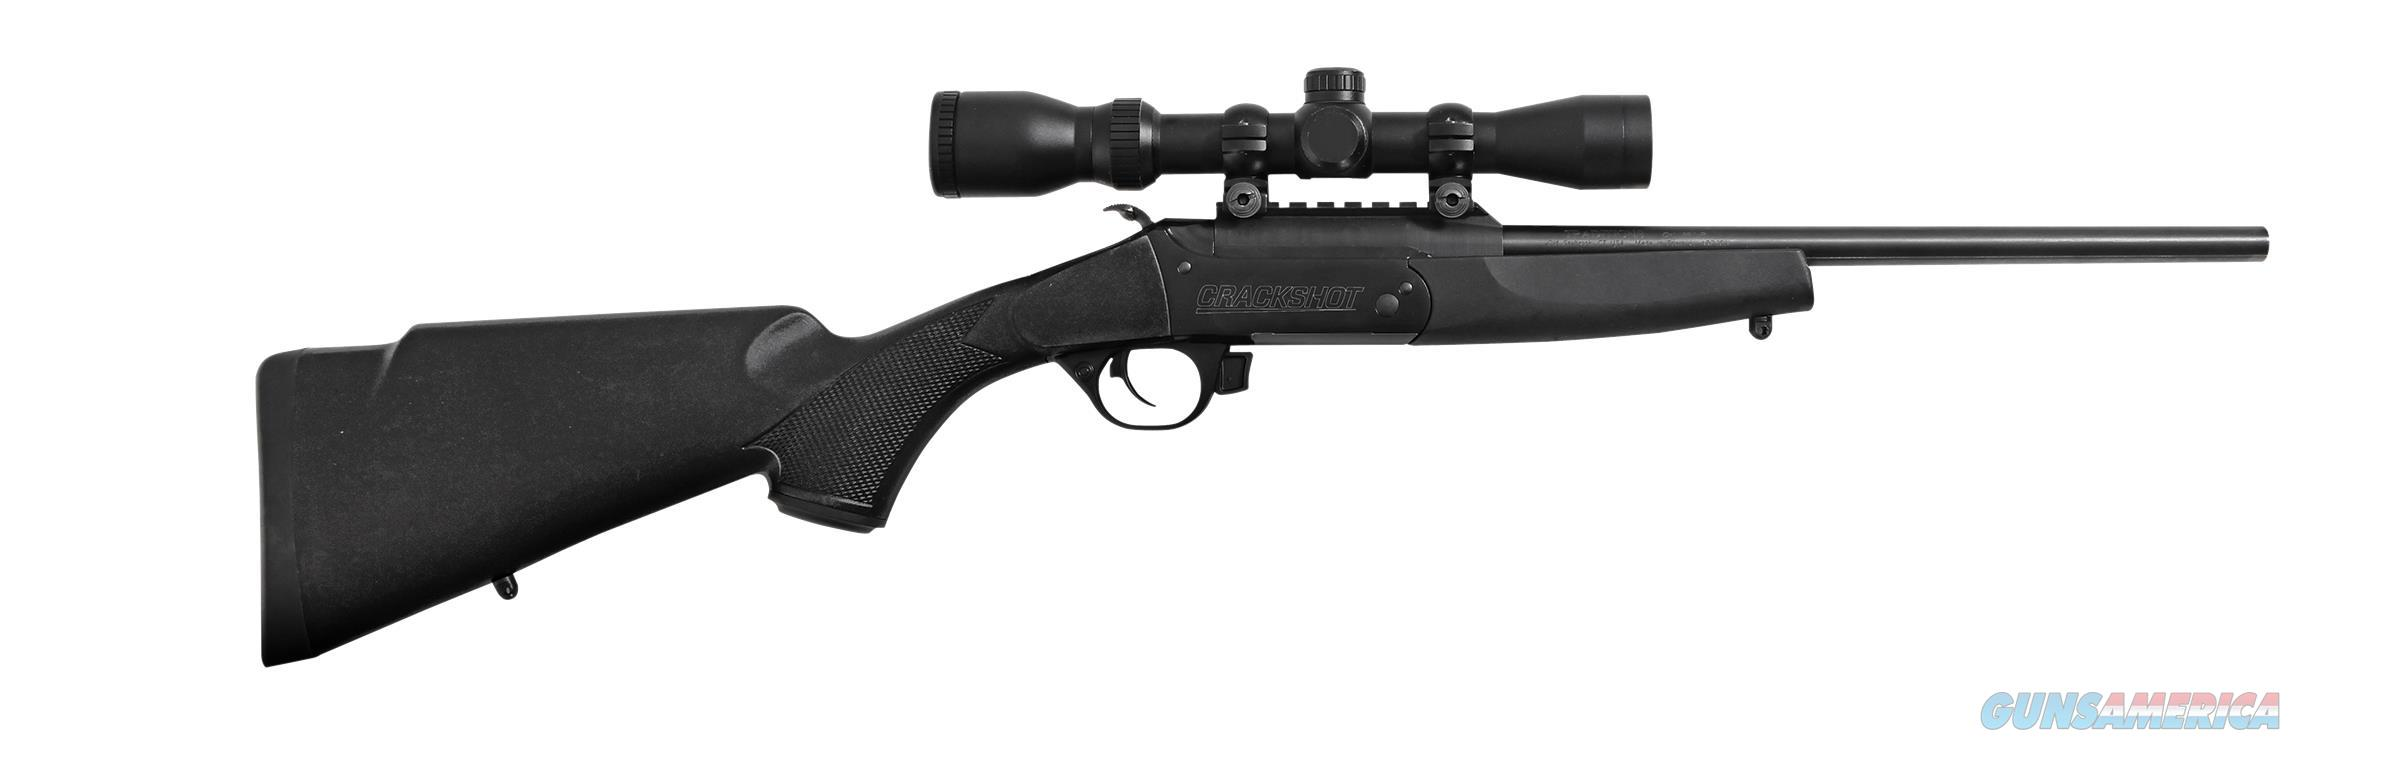 "TRADITIONS CR1220070 CRACKSHOT W/SCOPE BO 22LR 16.5"" 1RD BLACK SYN STOCK CR1220070  Guns > Rifles > Traditions Rifles"